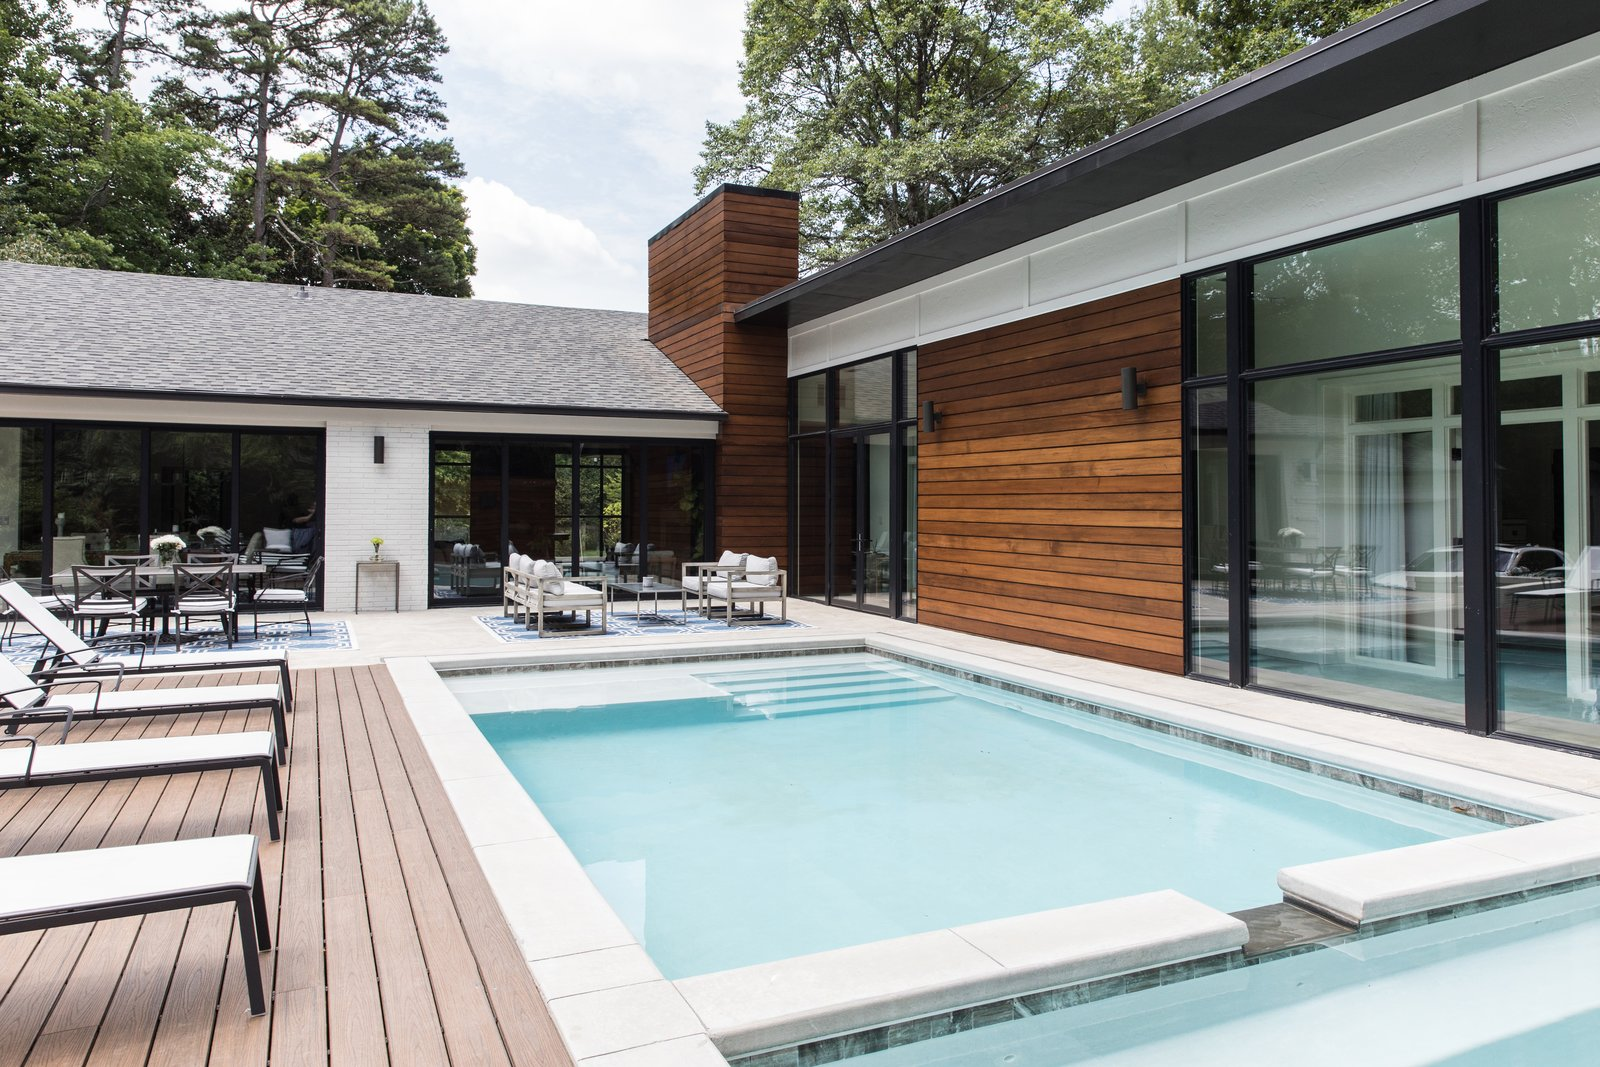 Exterior, House Building Type, Mid-Century Building Type, Hipped RoofLine, Wood Siding Material, and Shingles Roof Material Back terrace featuring a pool and spa  Guinn/Henderson Residence